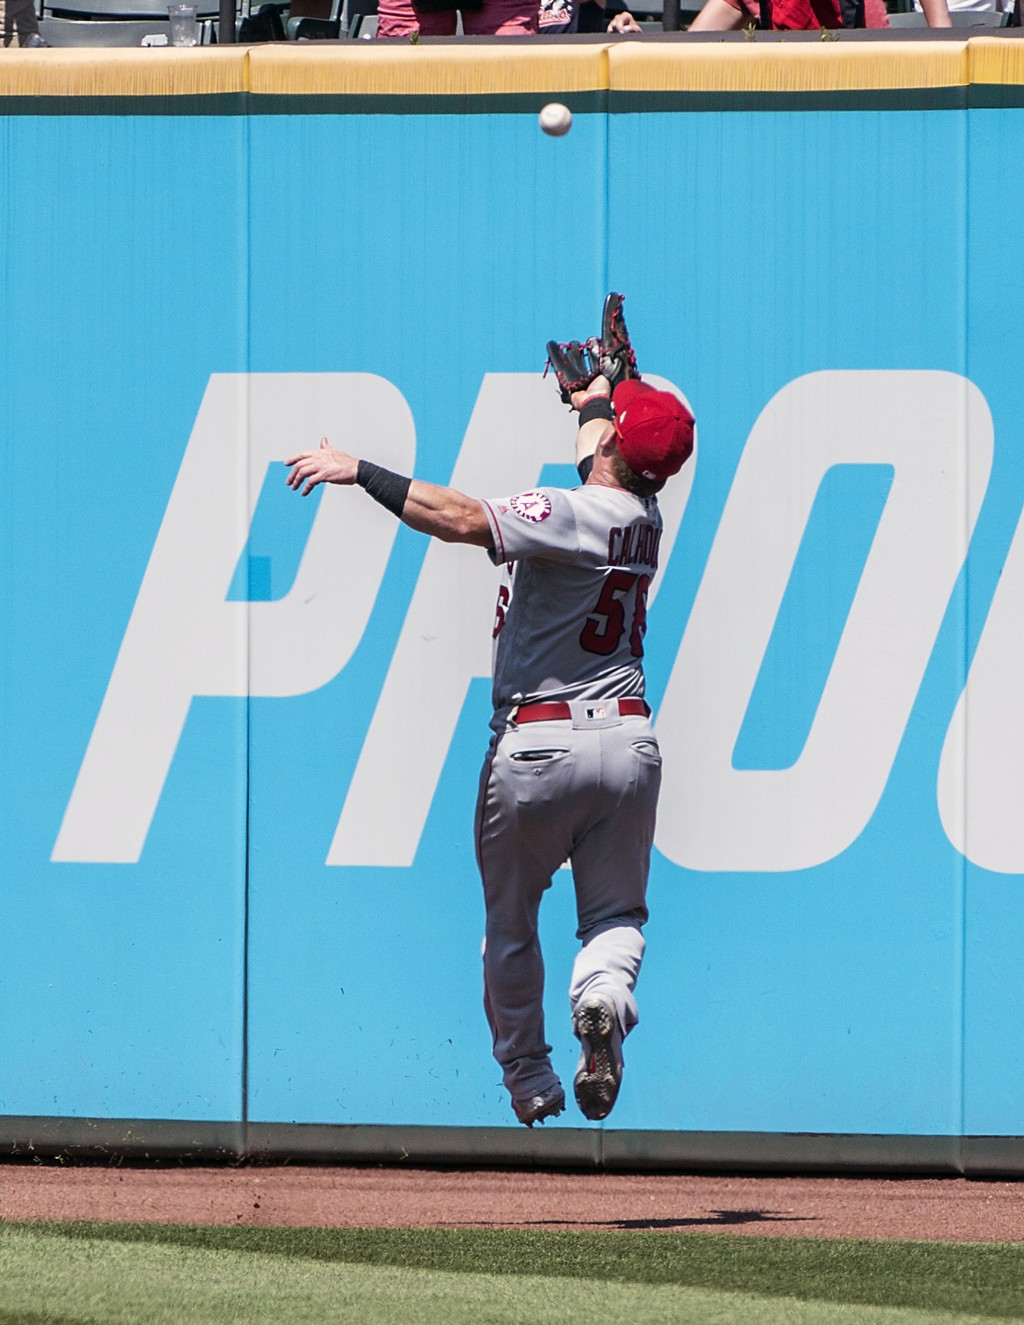 Los Angeles Angels' Kole Calhoun misses a fly ball by Cleveland Indians' Jordan Luplow during the fourth inning of a baseball game in Cleveland, Sunda...